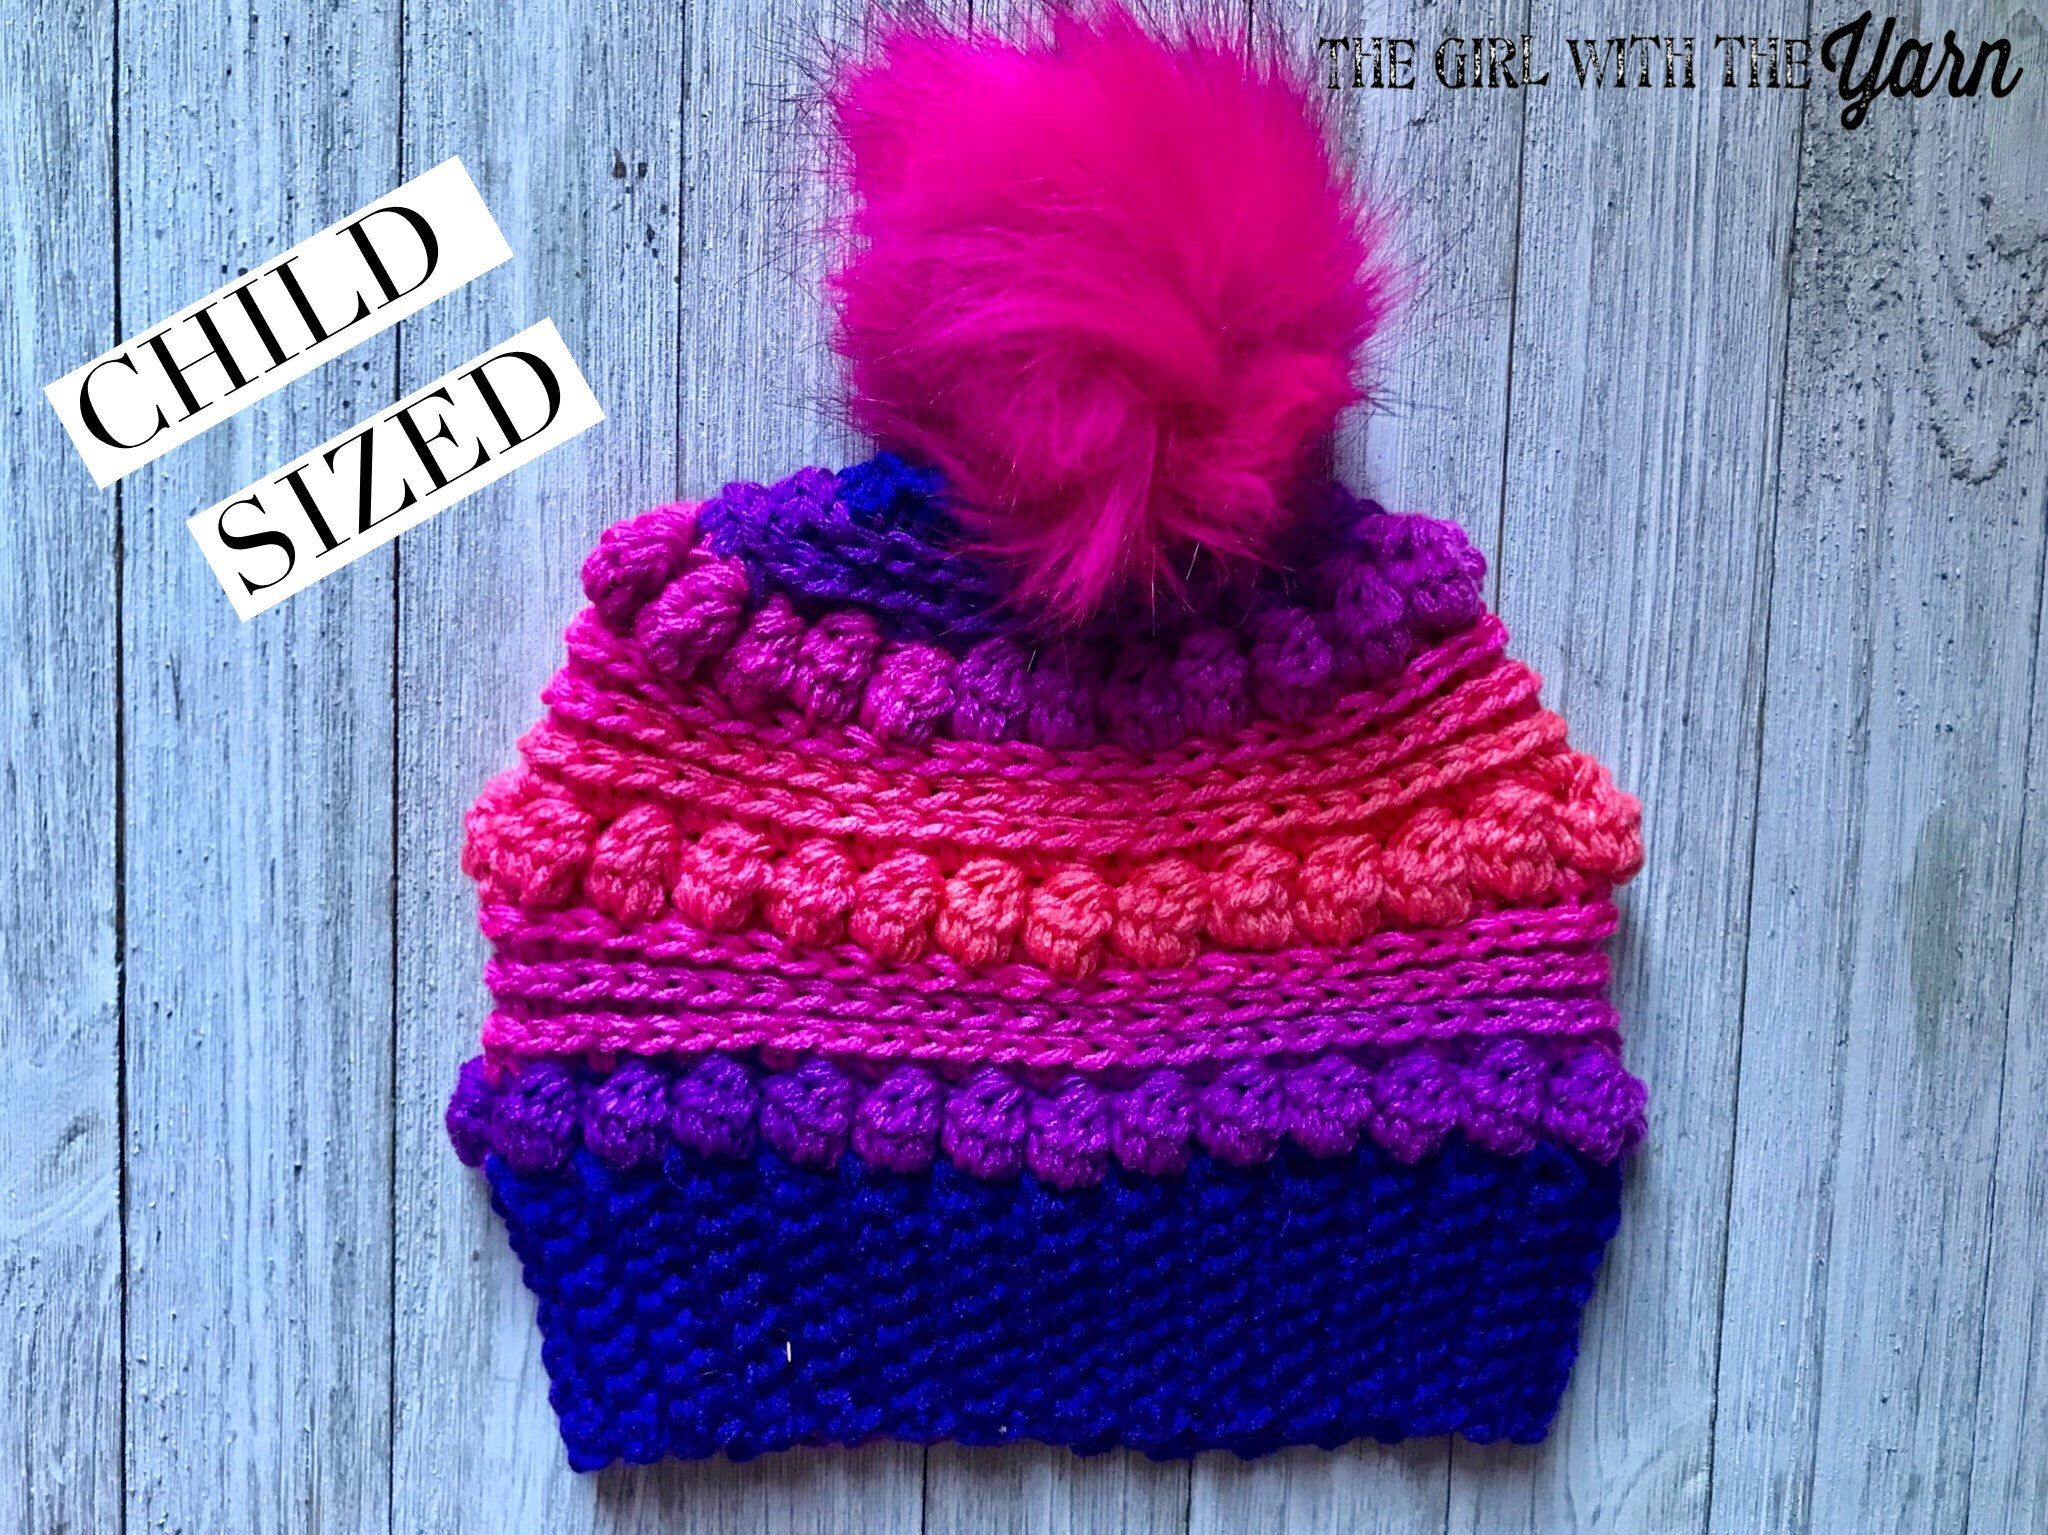 366089c2d0c Excited to share this item from my  etsy shop  Pink and Purple Striped  Bubblegum Pop Bobble Hat with Faux Fur Pom Pom